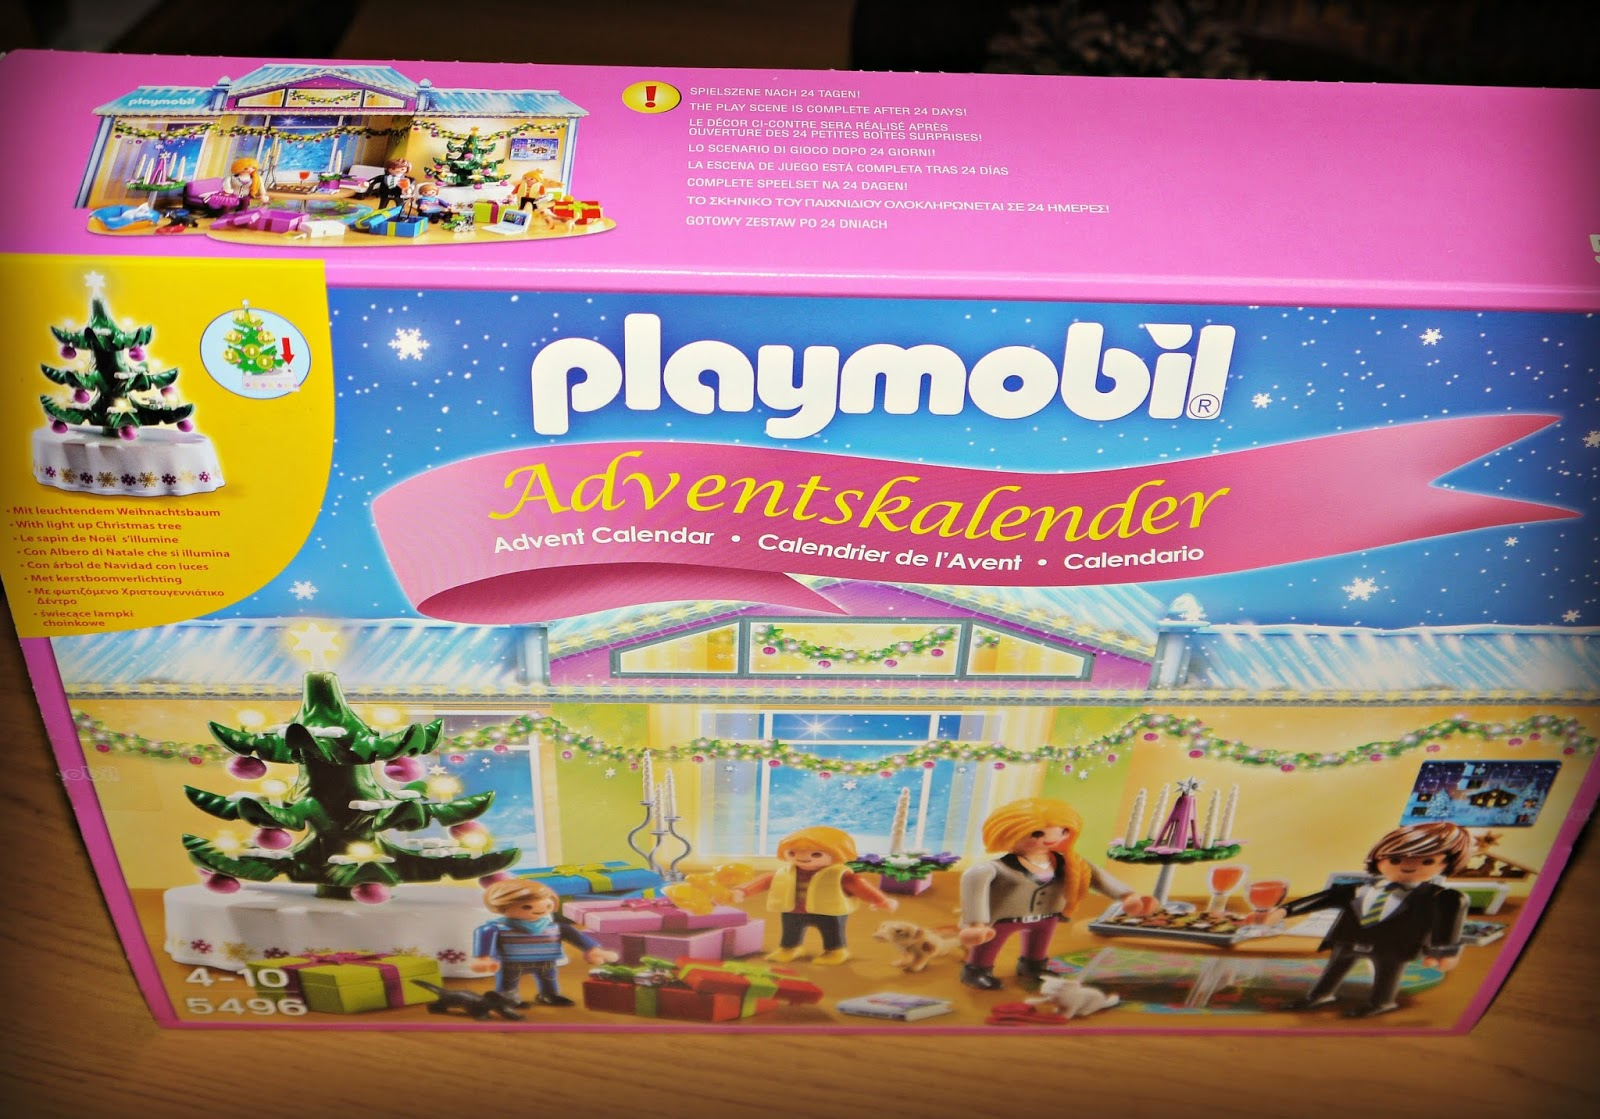 Playmobil Weihnachtsbaum.Inside The Wendy House Counting Down To Christmas With A Playmobil